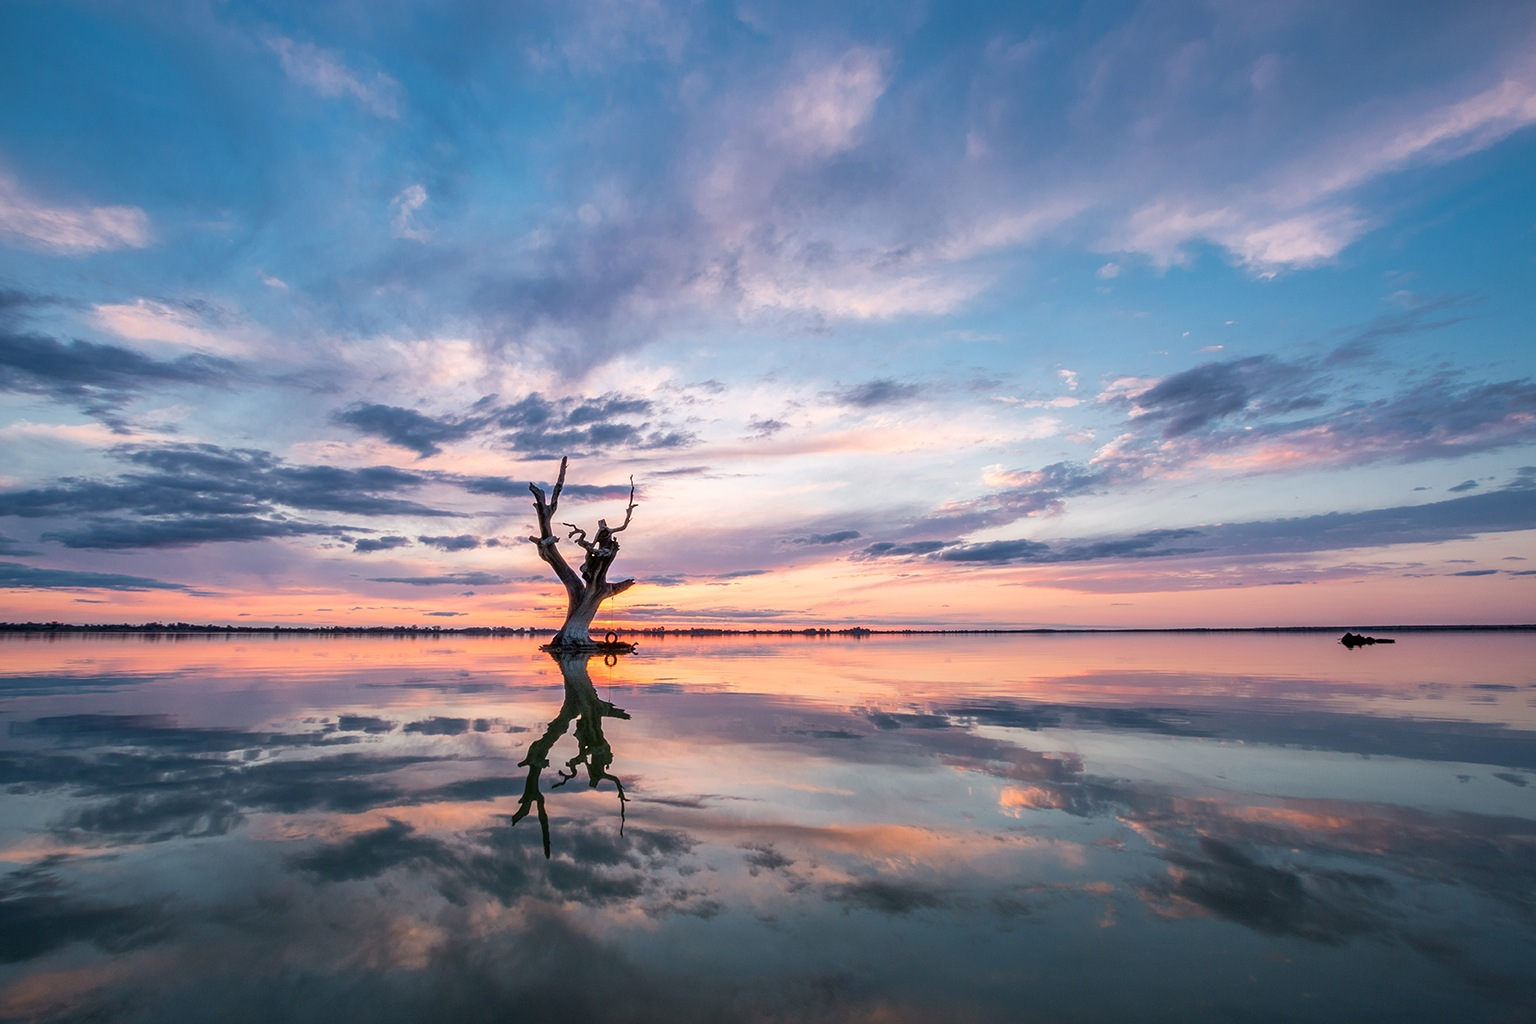 Reflection Perfection by Kirsty Morrell